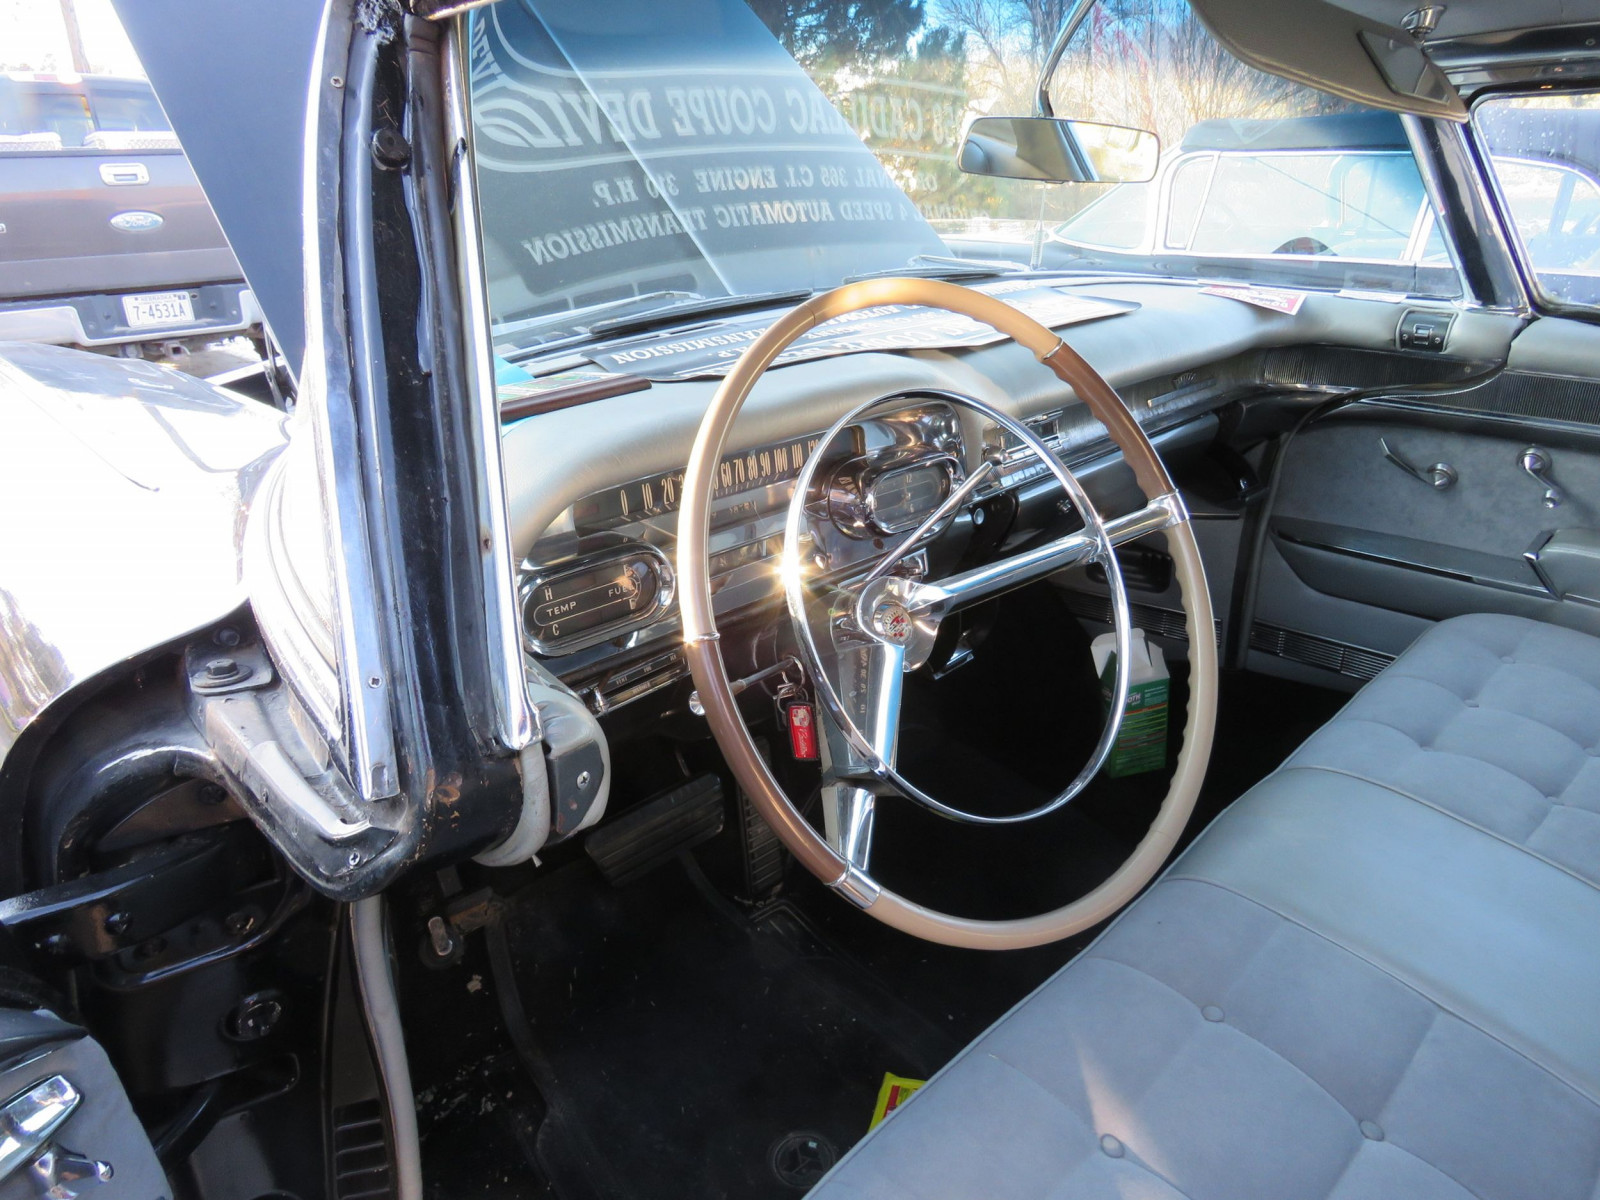 1958 Cadillac Coupe DeVille - Image 9